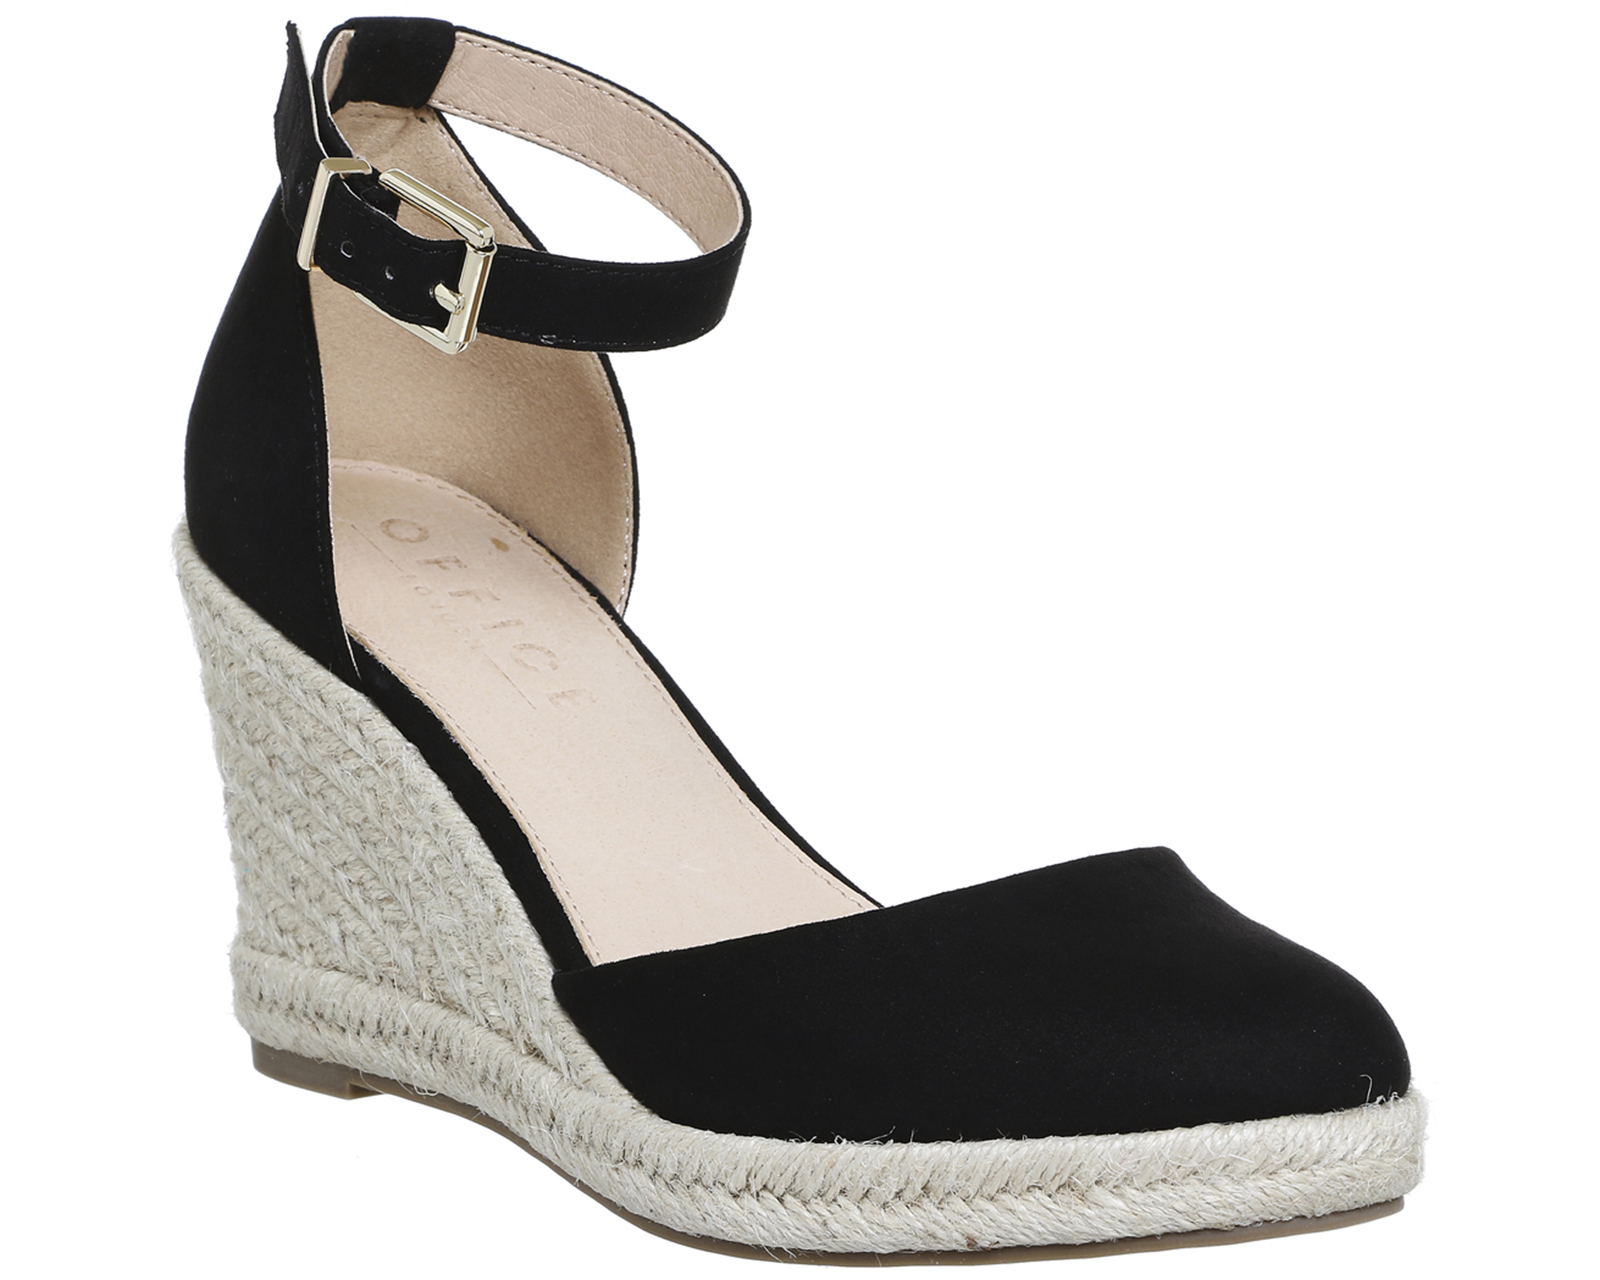 Image result for Closed toe wedges espadrilles 7daa5e6dc242